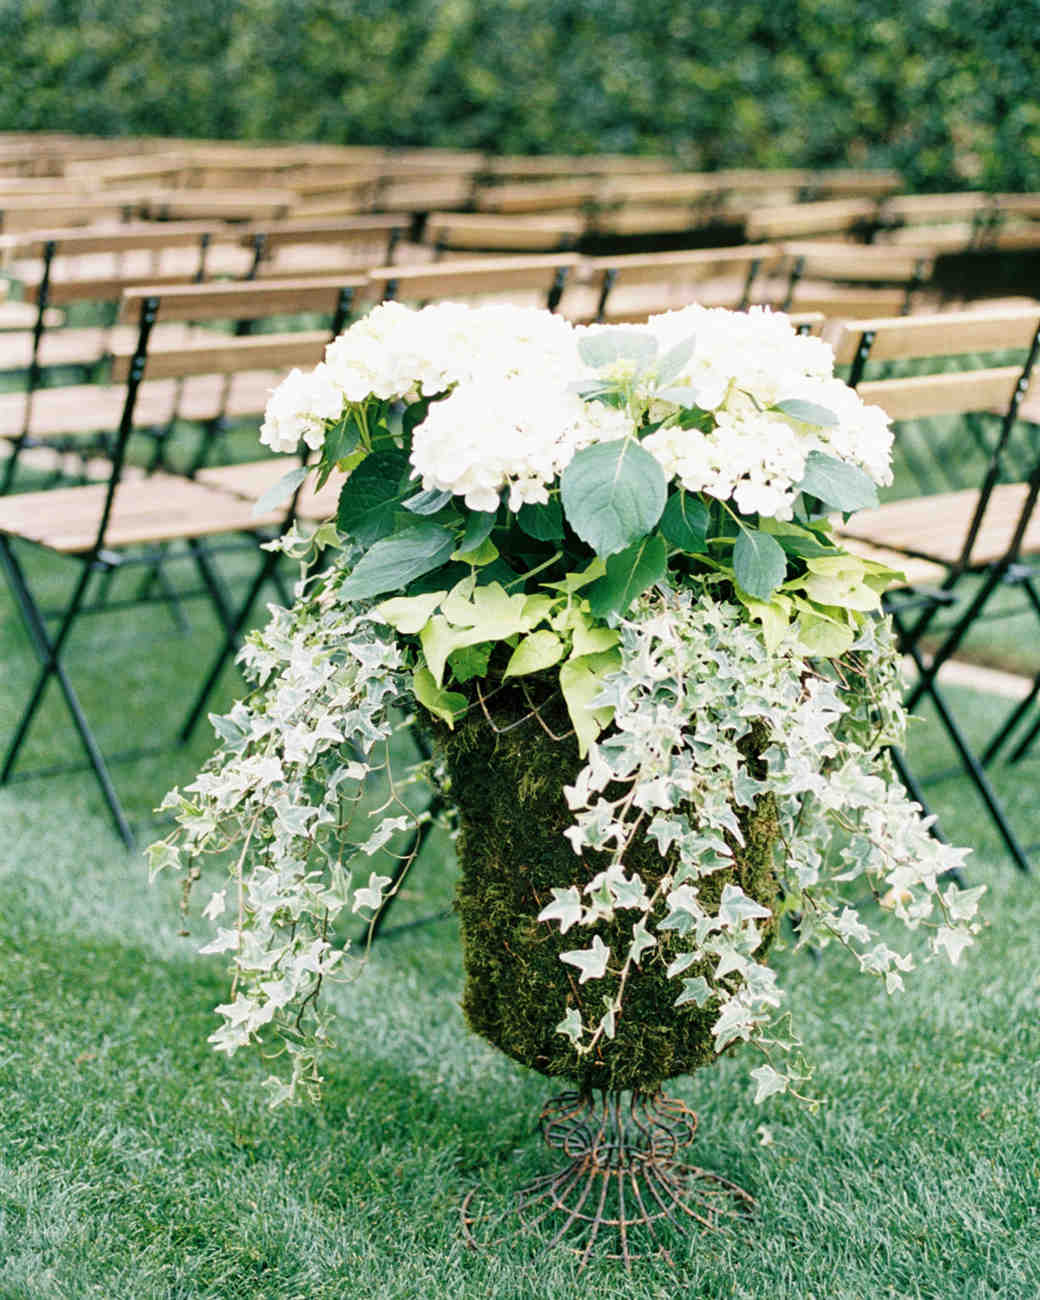 large floral ceremony arrangements of greenery and a white flower